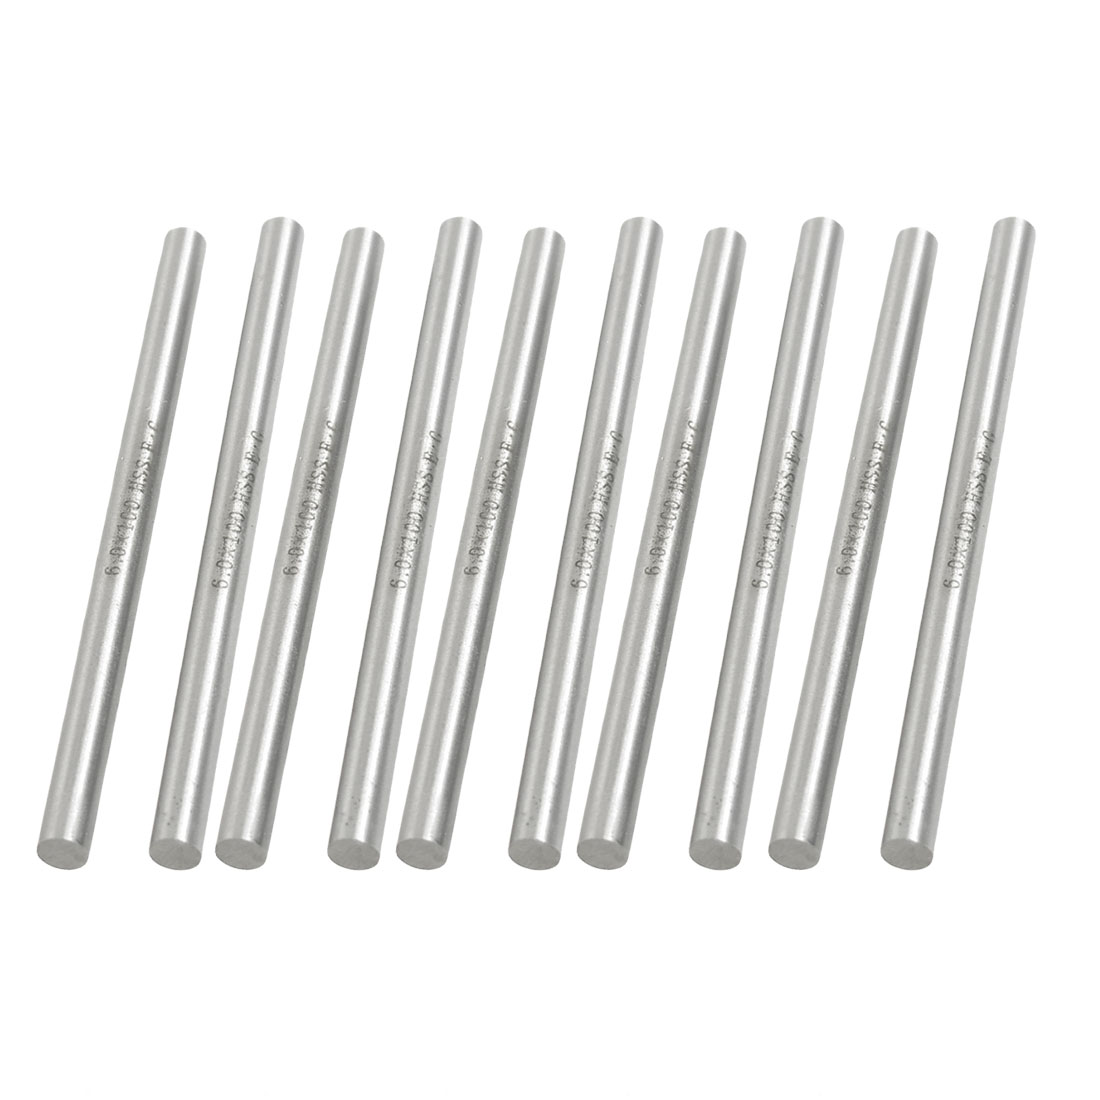 10 Pcs High Speed Steel Lathe Round Bar Milling Cutter 6mm x 100mm